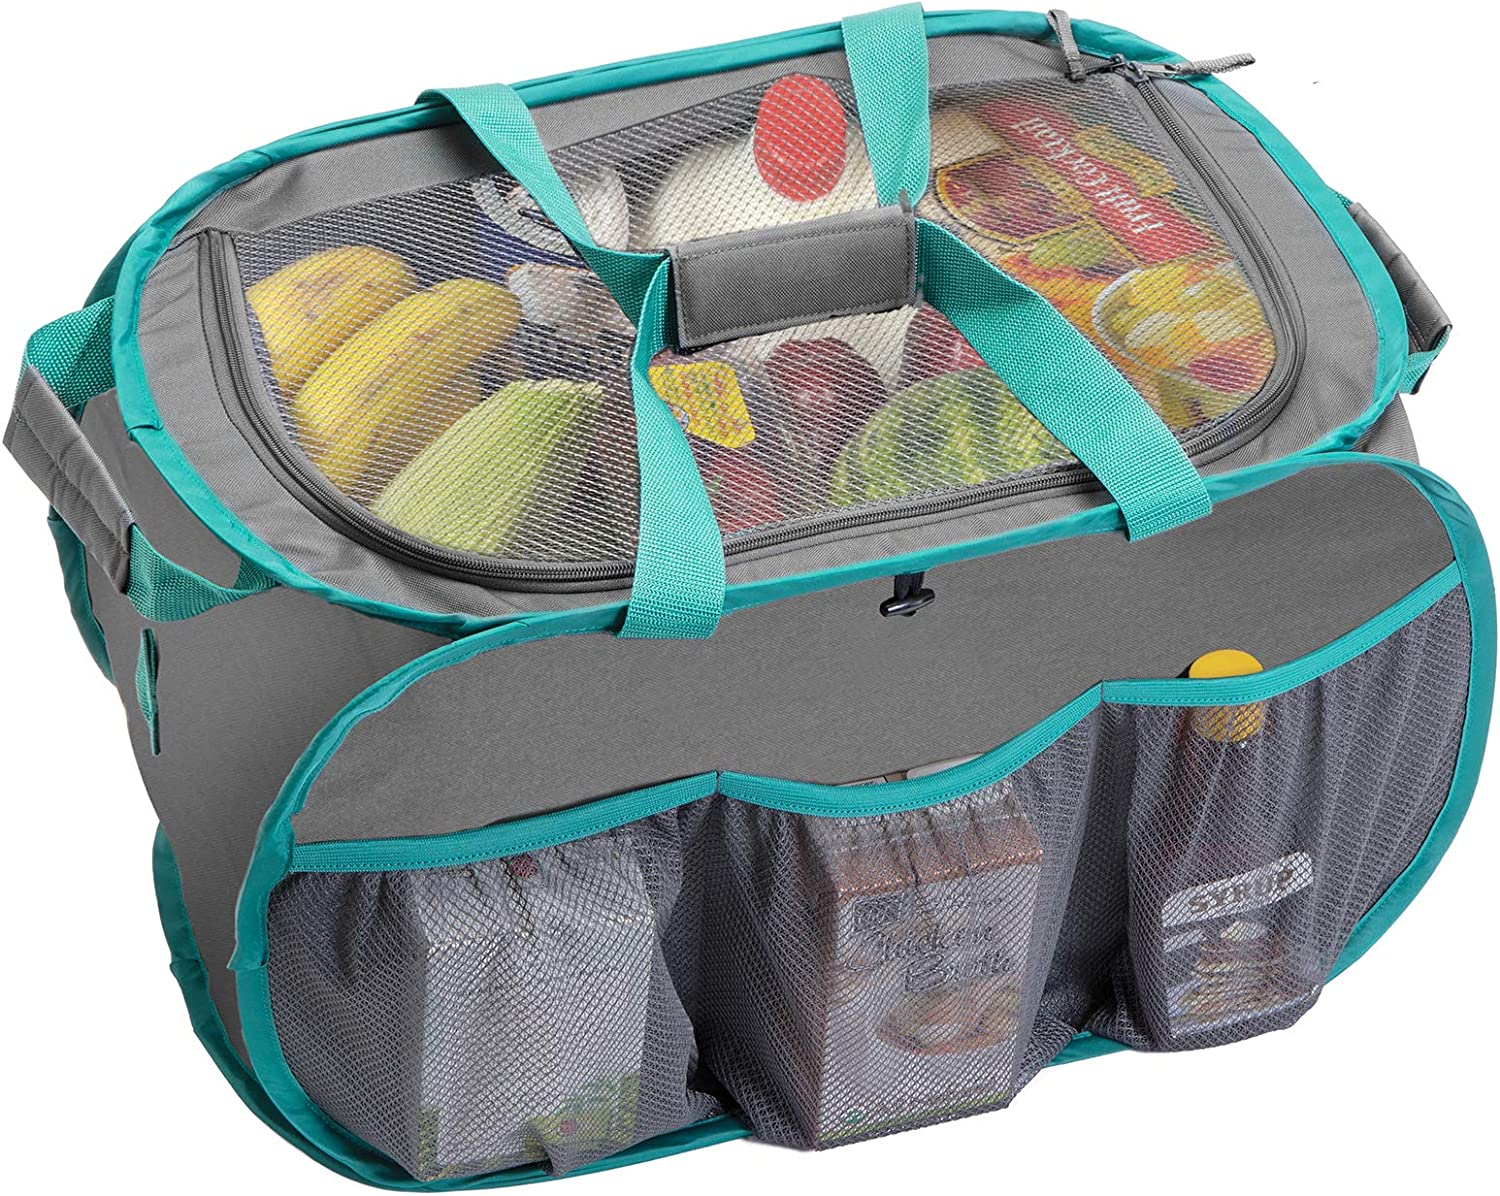 Amazon Com Smart Design Pop Up Trunk Organizer W Easy Carry Handles Side Pockets Zipper Top 23 Inch Durable Fabric Collapsible Design Home Organization Holds 50 Lbs Gray W Teal Trim Home